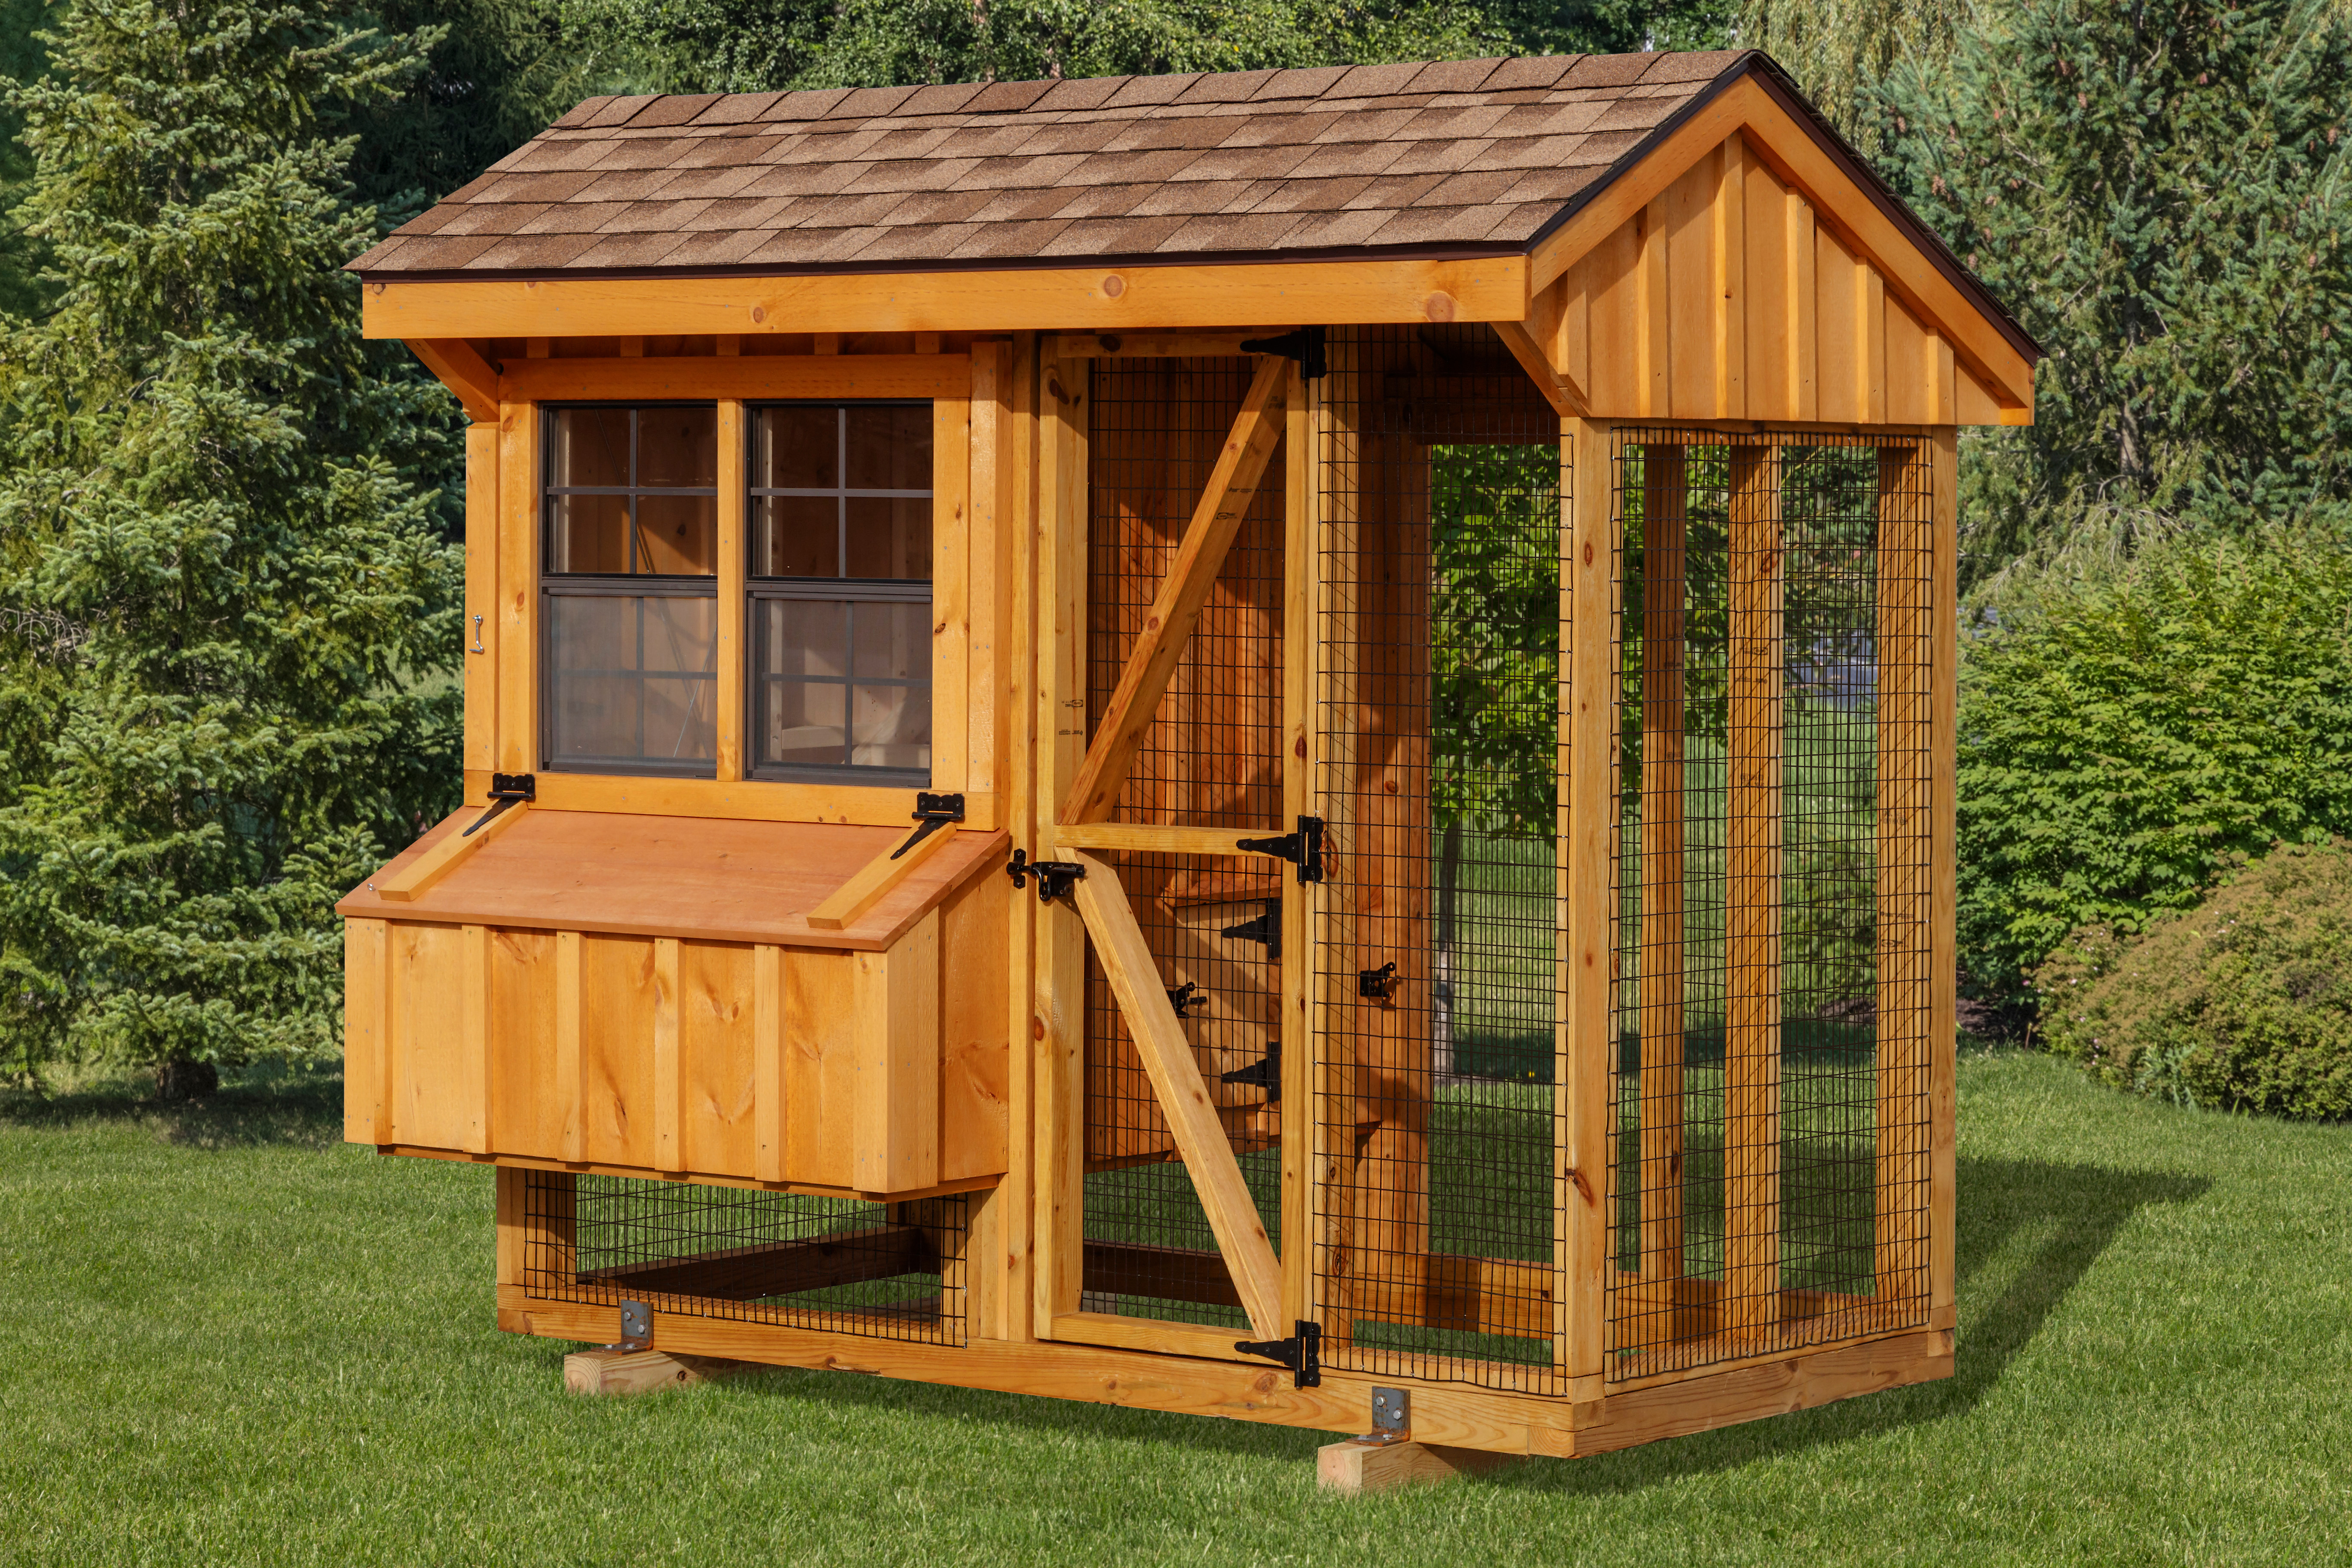 4x8 amish chicken coop sale